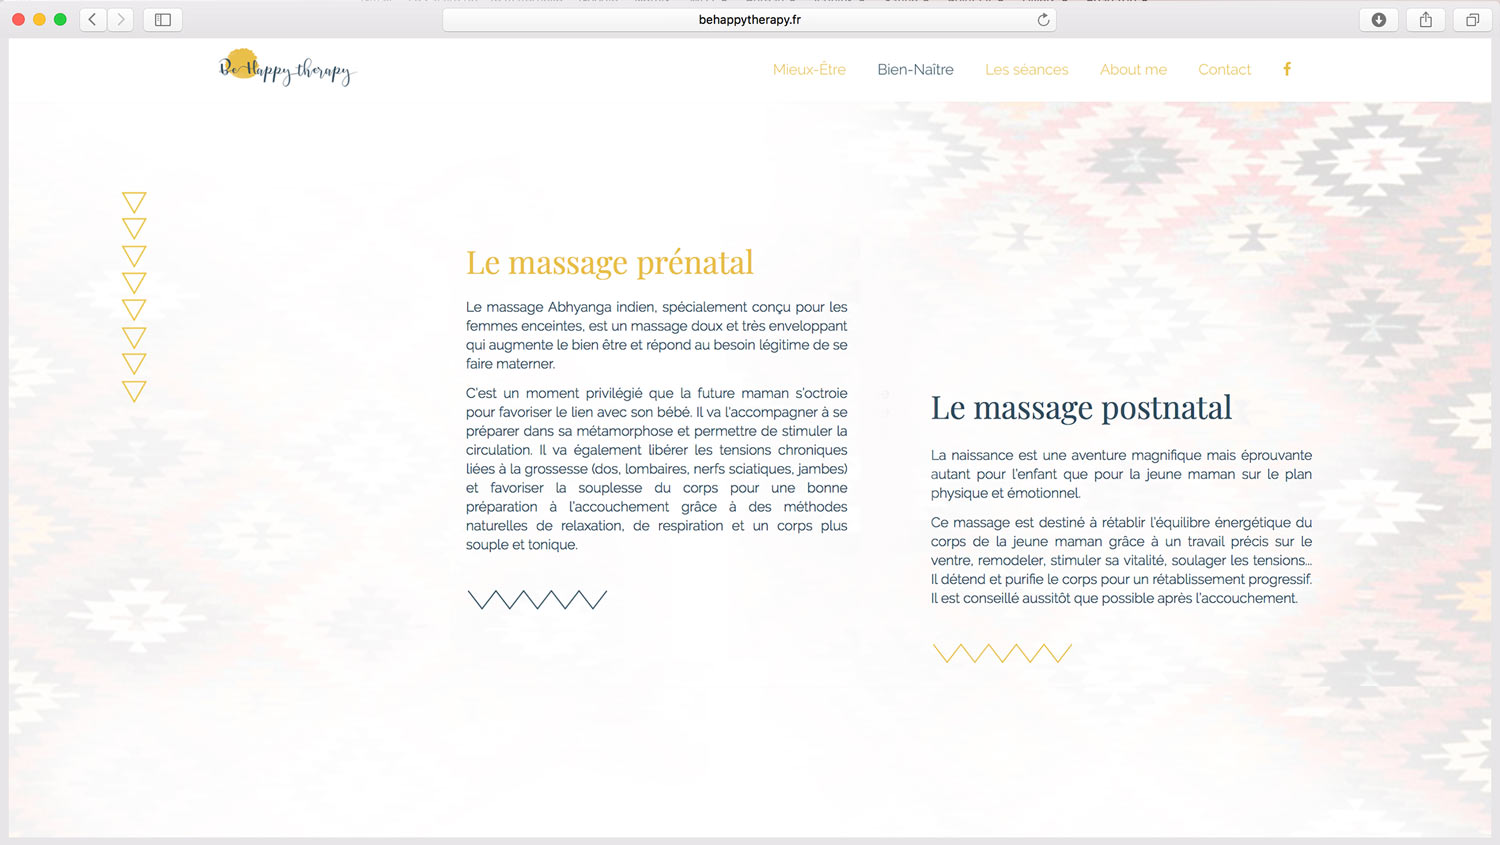 création de site web pour cabinet massage relaxation sophrologie Be Happy Therapy